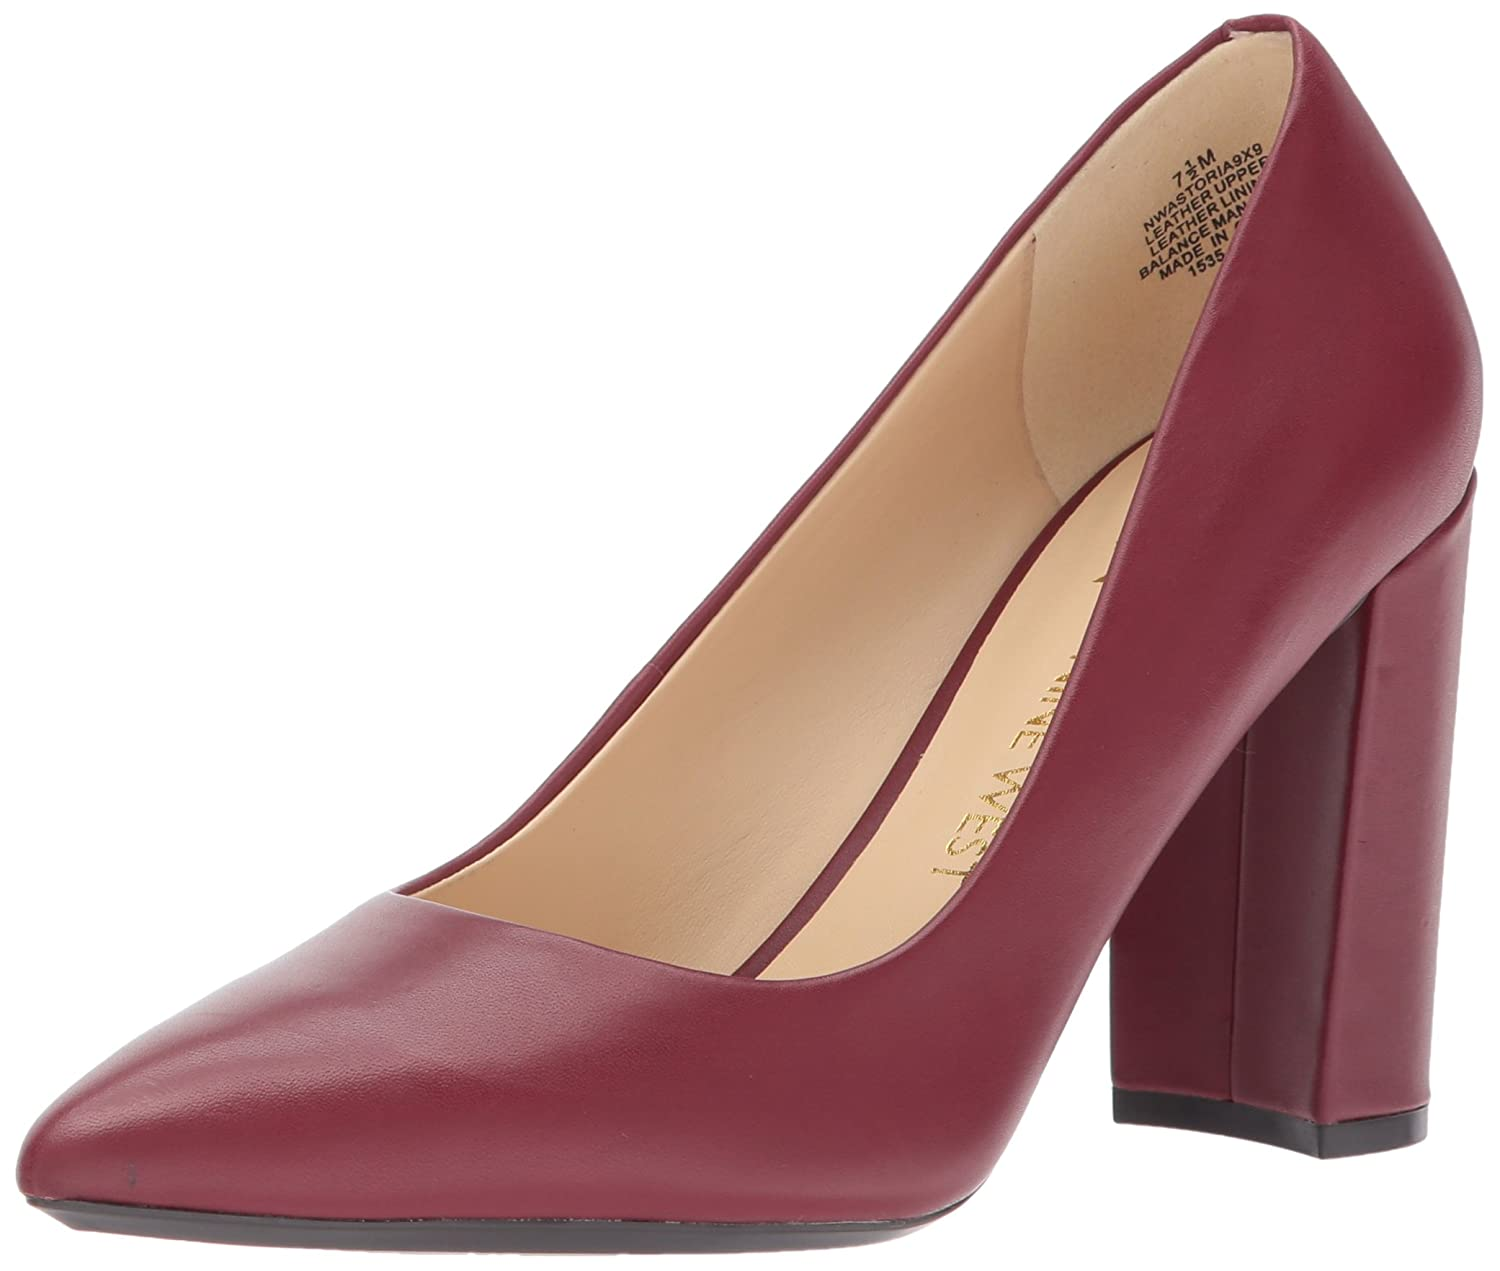 Nine West Women's Astoria Pump B06WLKXY1R 6 B(M) US|Wine Leather